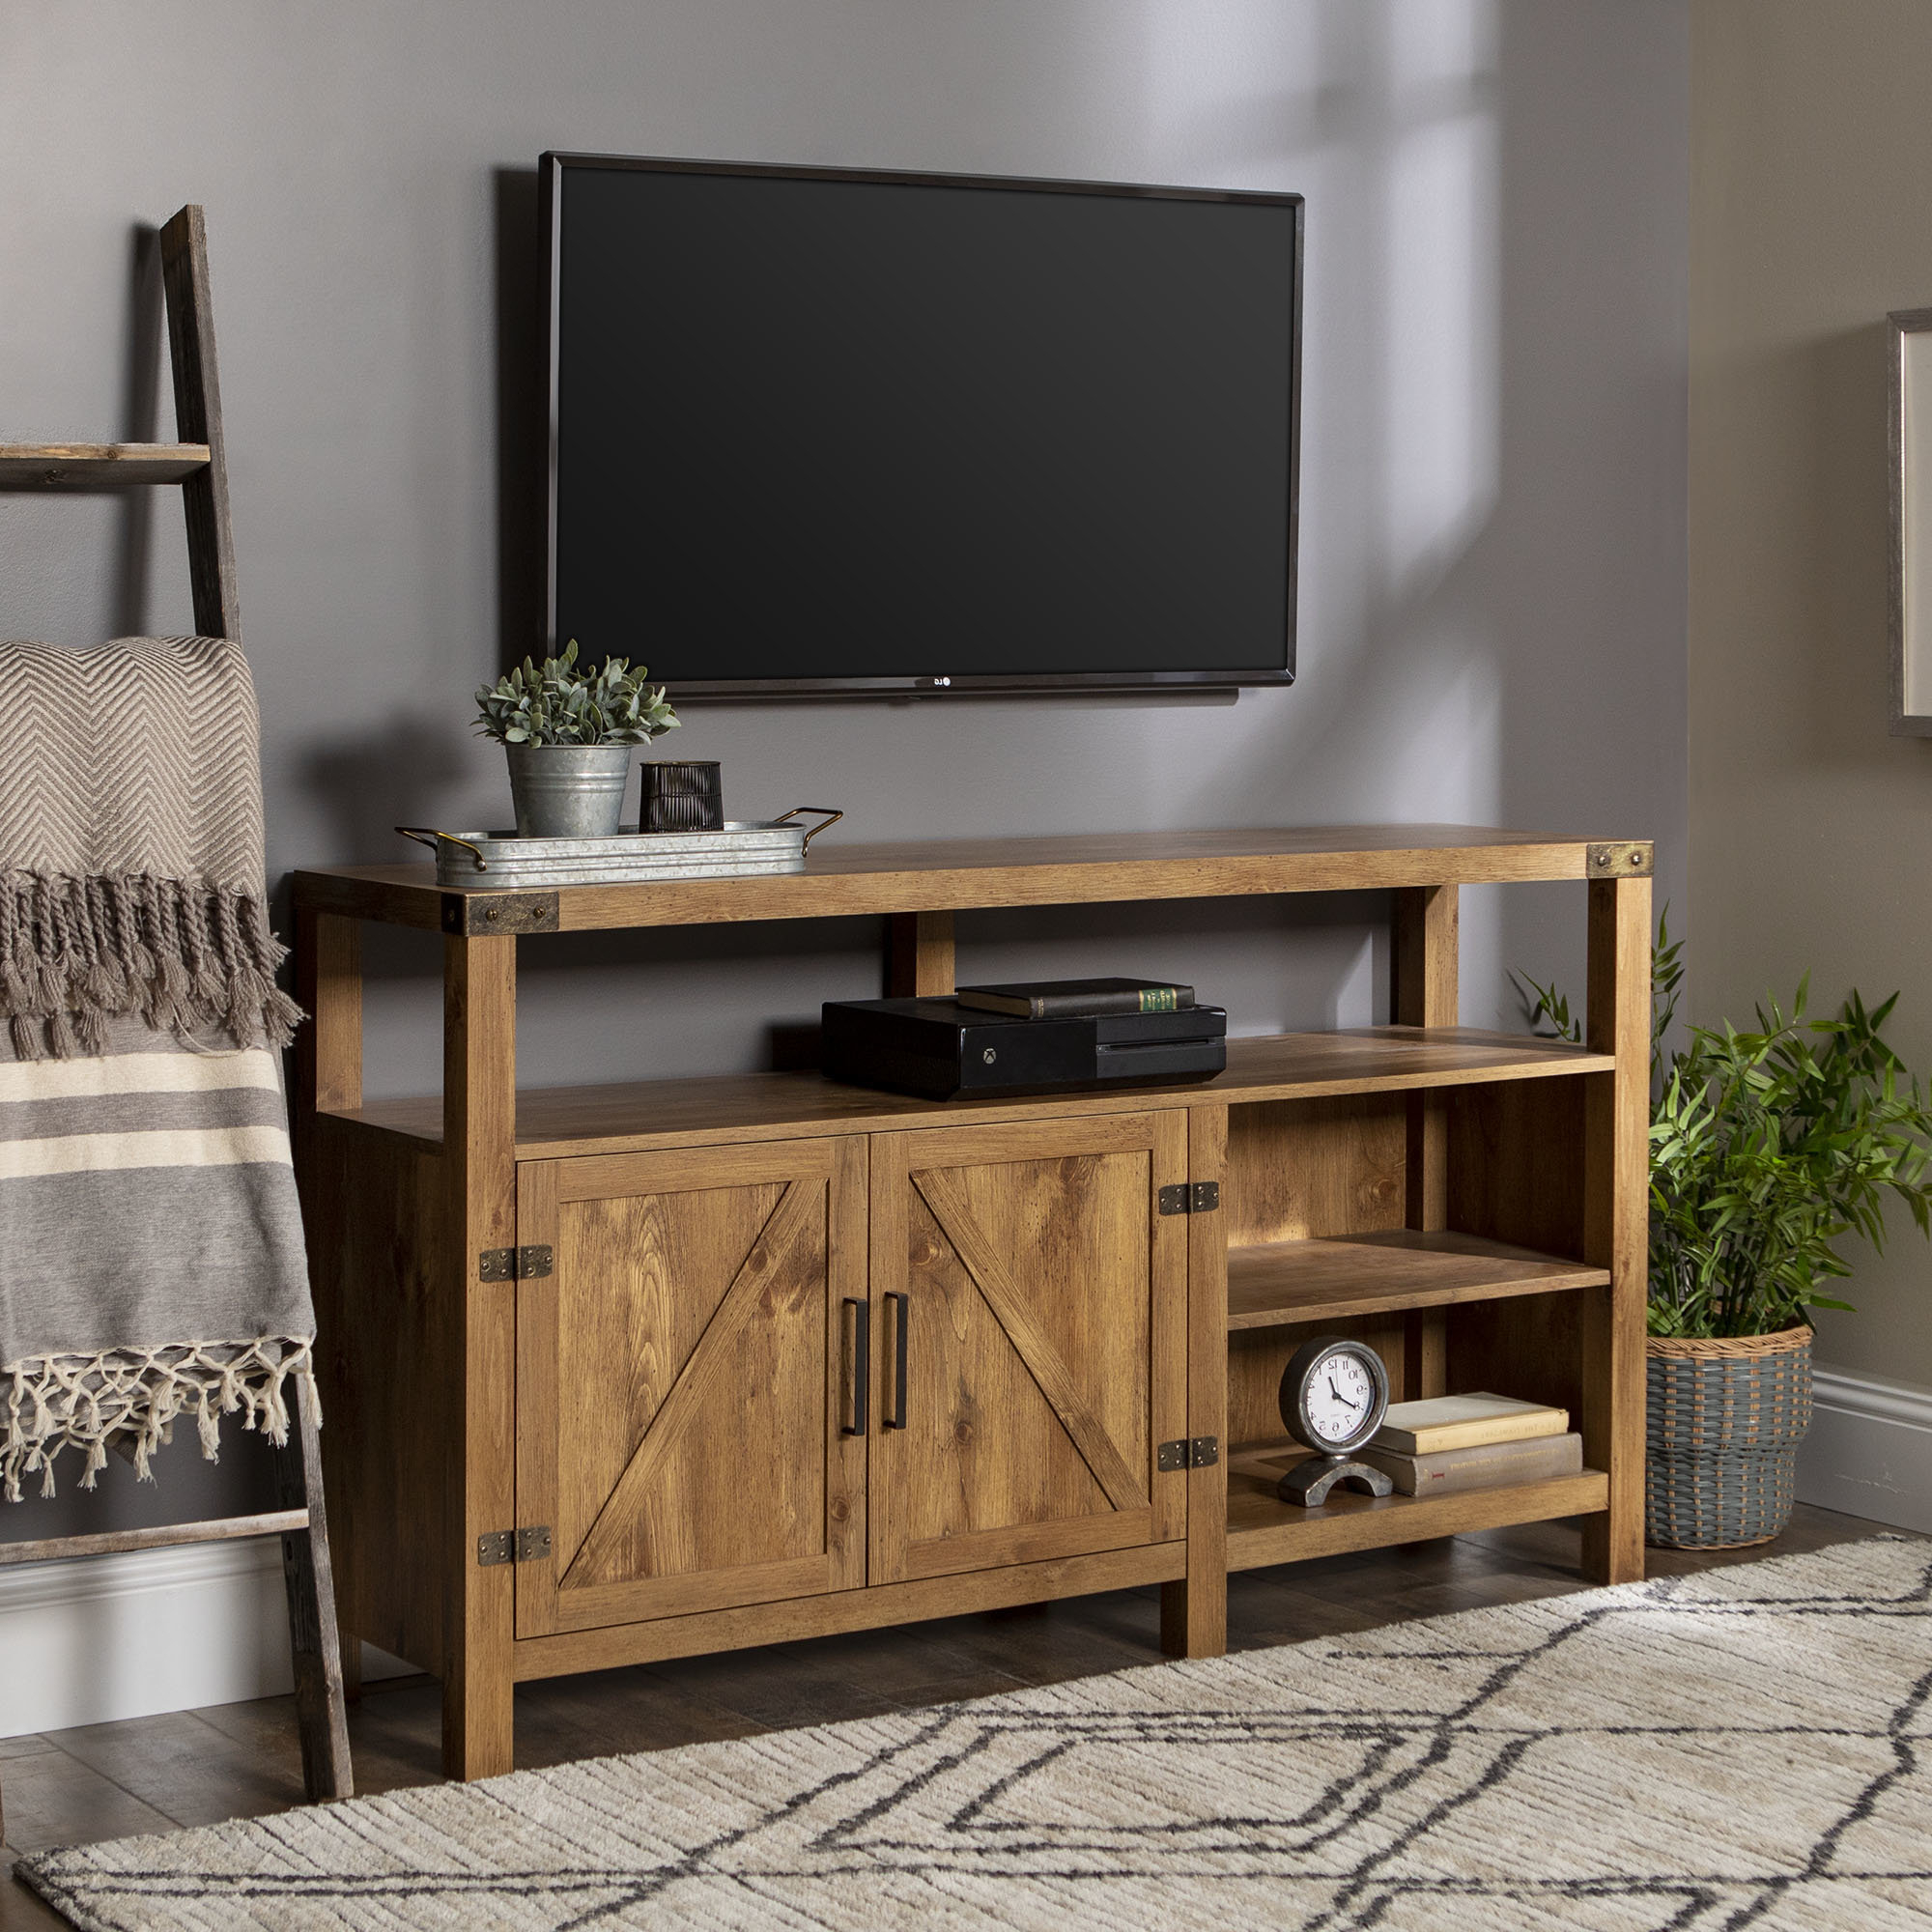 Tv Stand For 75 Inch Tv | Wayfair Regarding Laurent 60 Inch Tv Stands (Gallery 9 of 20)